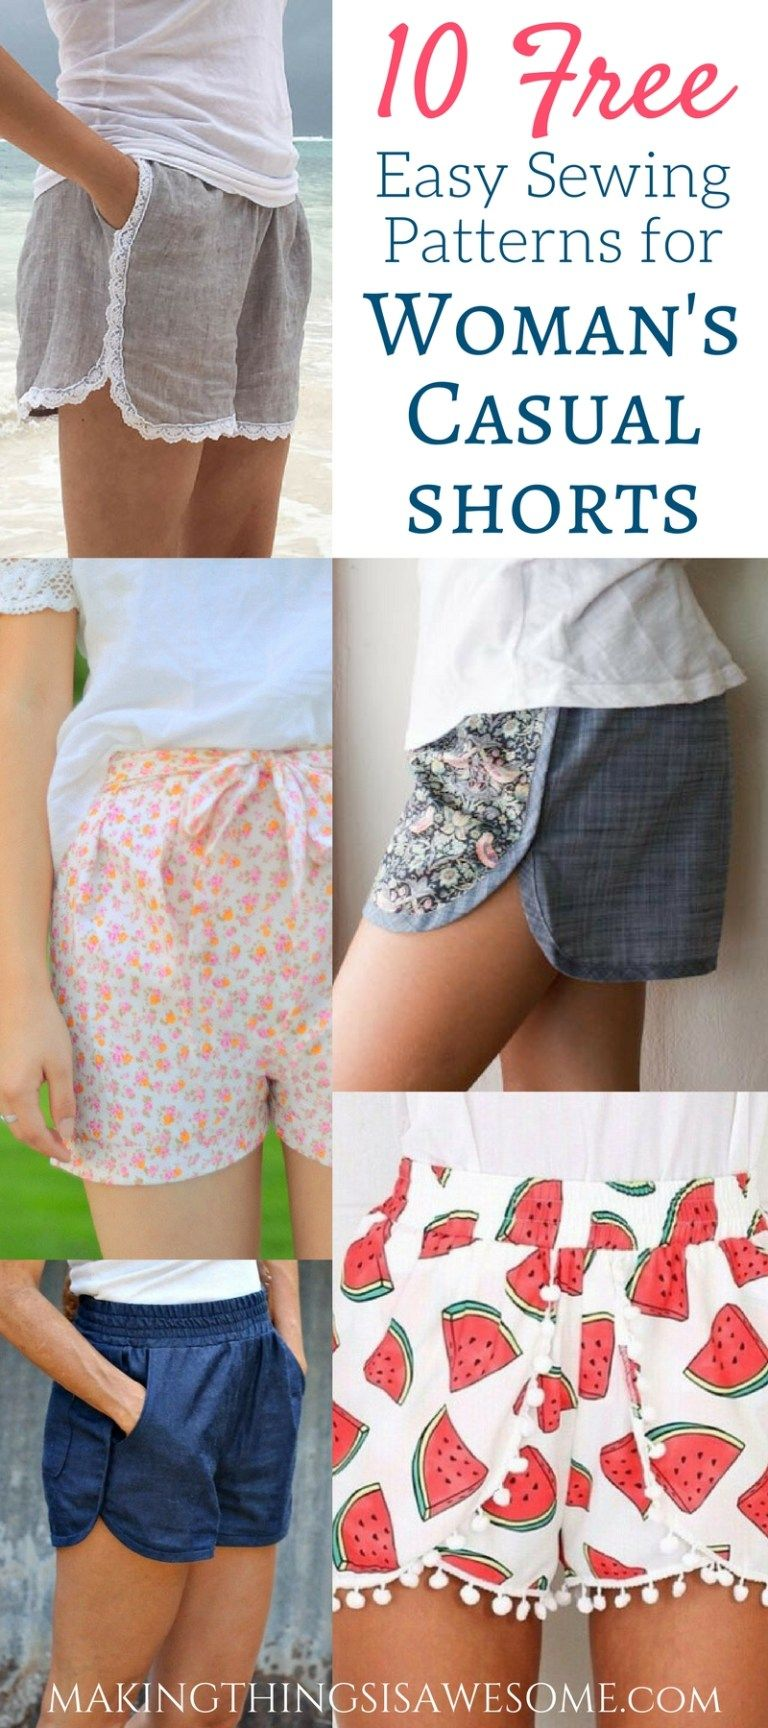 10 Free Woman's Casual Shorts Sewing Patterns: Round-up #beginnersewingprojects